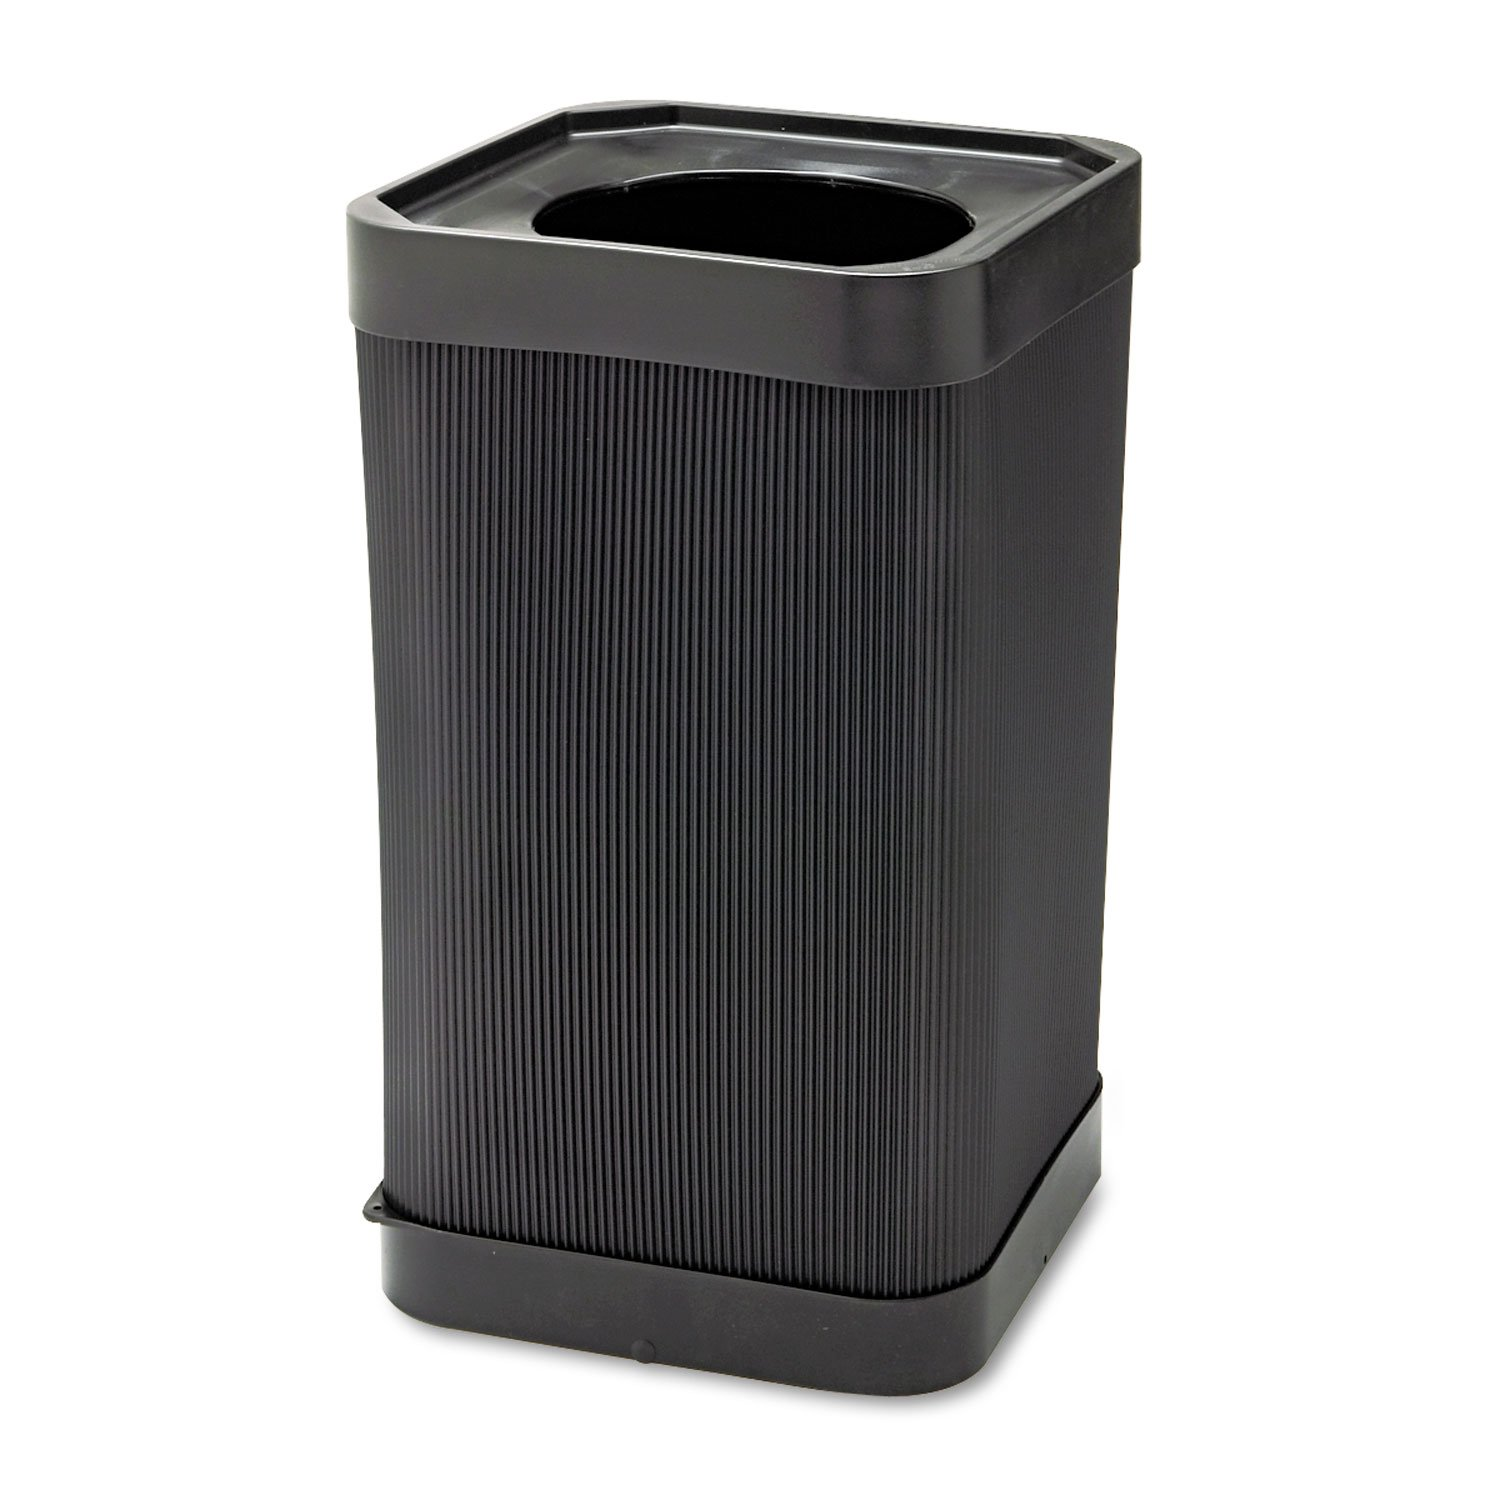 SAF9790BL - Safco At-Your-Disposal Receptacle